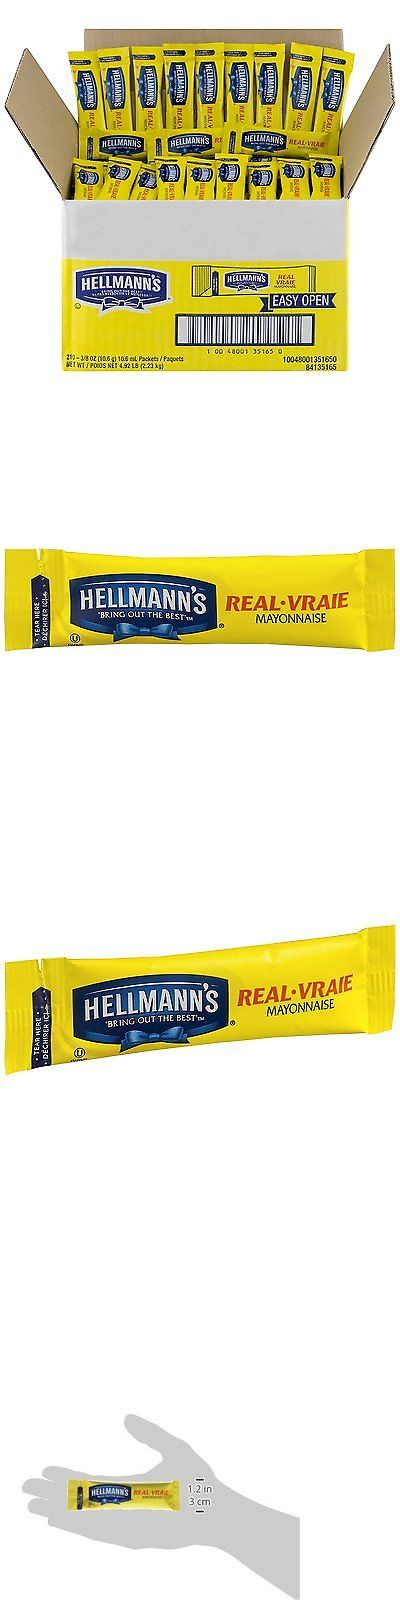 Condiments 134645: Hellmanns Real Mayonnaise Stick Packets, 0.38 Ounce 210 Count -> BUY IT NOW ONLY: $32.58 on eBay!